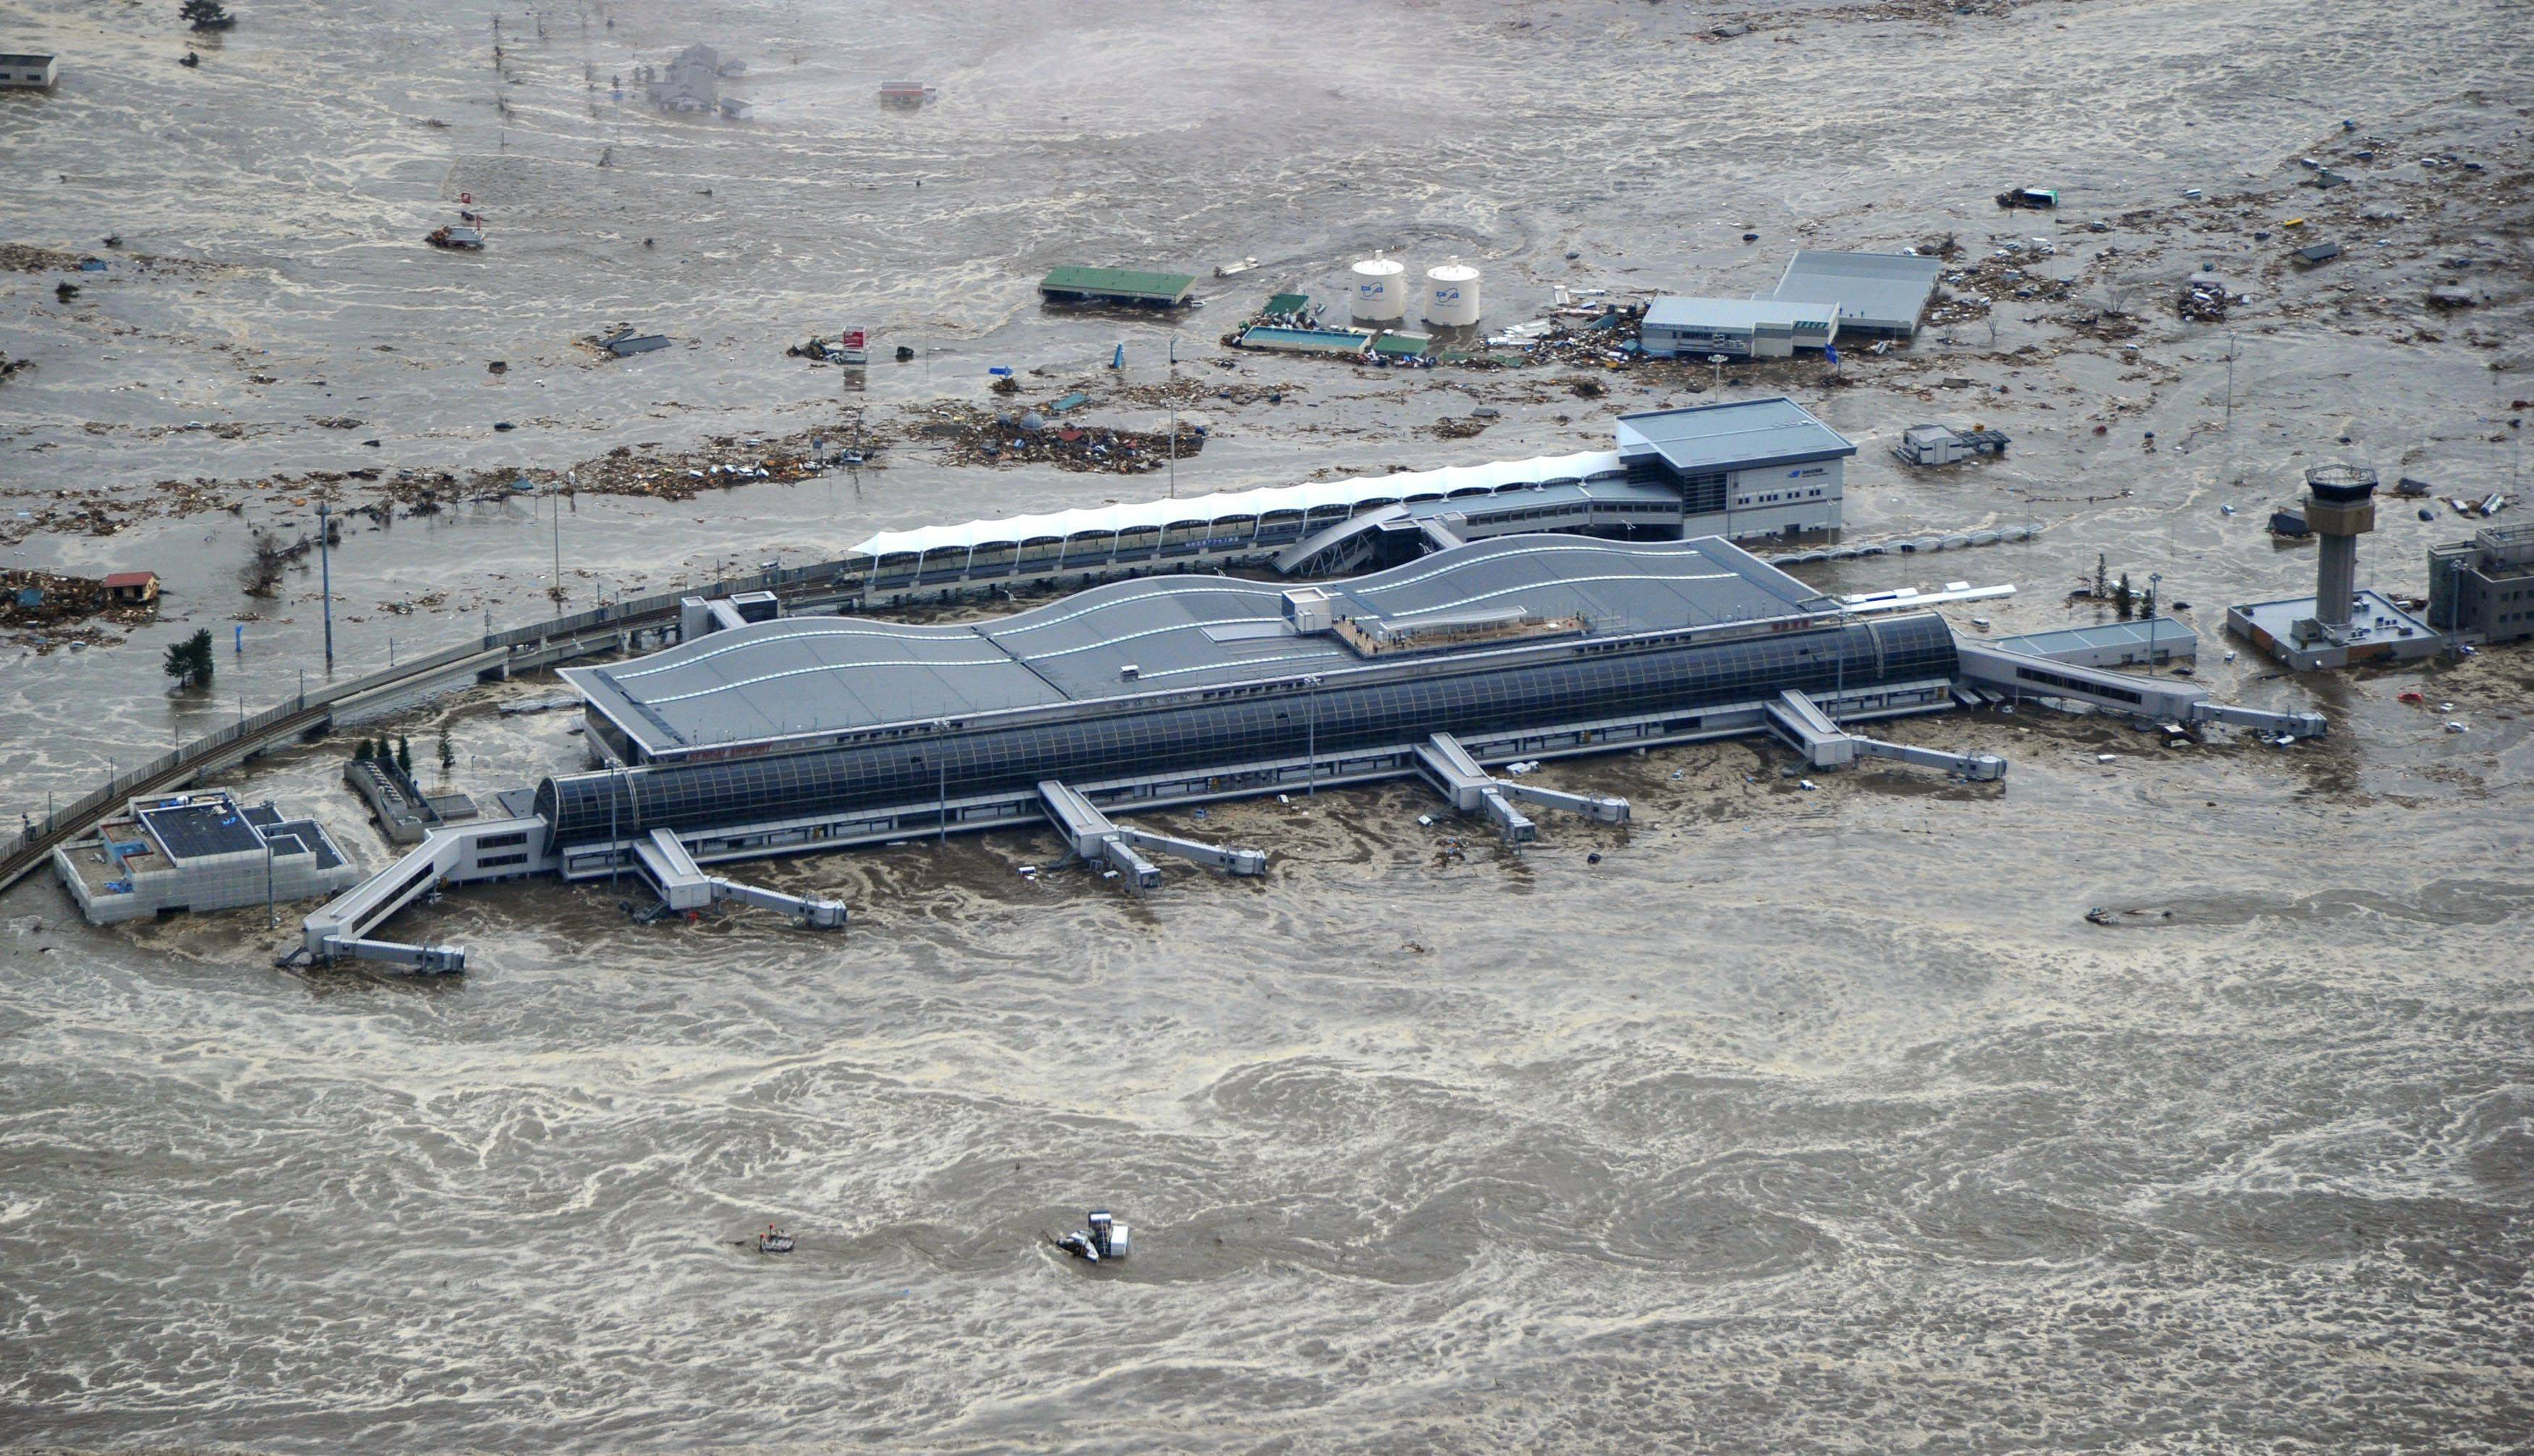 Sendai Airport is surrounded by waters in Miyagi prefecture (state), Japan, after a ferocious tsunami spawned by one of the largest earthquakes ever recorded slammed Japan's eastern coast Friday.